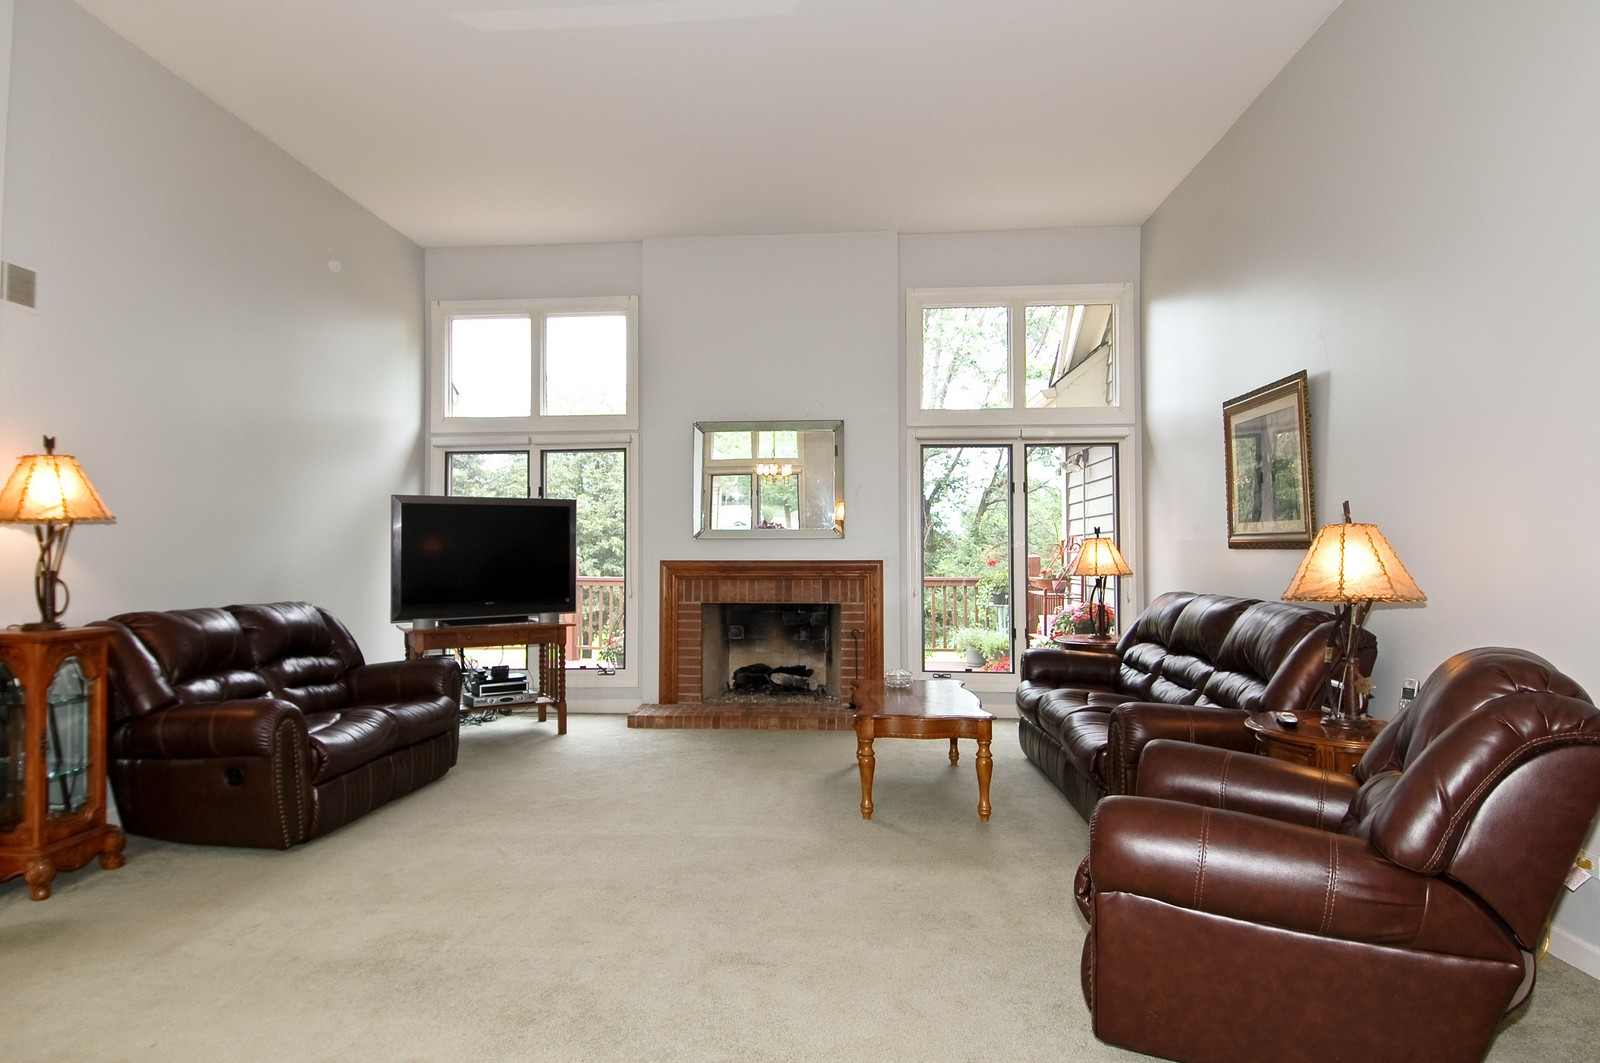 Real Estate Photography - 210 Course Dr, Lake in the Hills, IL, 60156 - Living Room